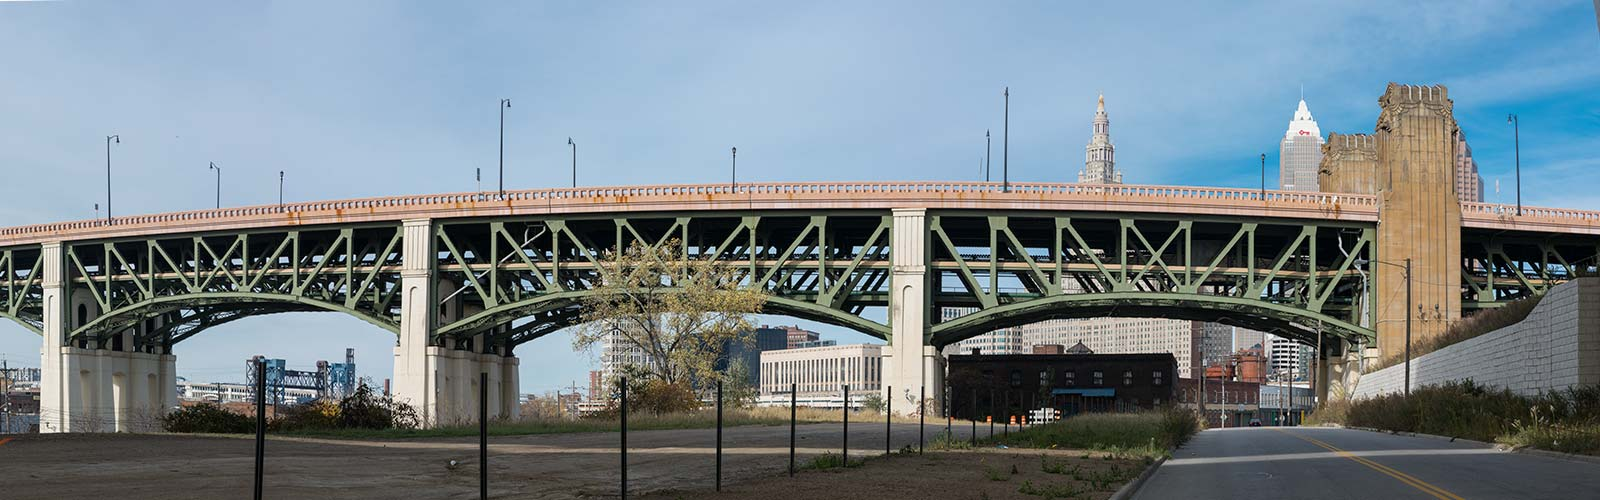 Part of the Rite Aid Marathon Route under the Lorain Carnegie Bridge on Canal Rd. <span class='image-credits'>Bob Perkoski</span>